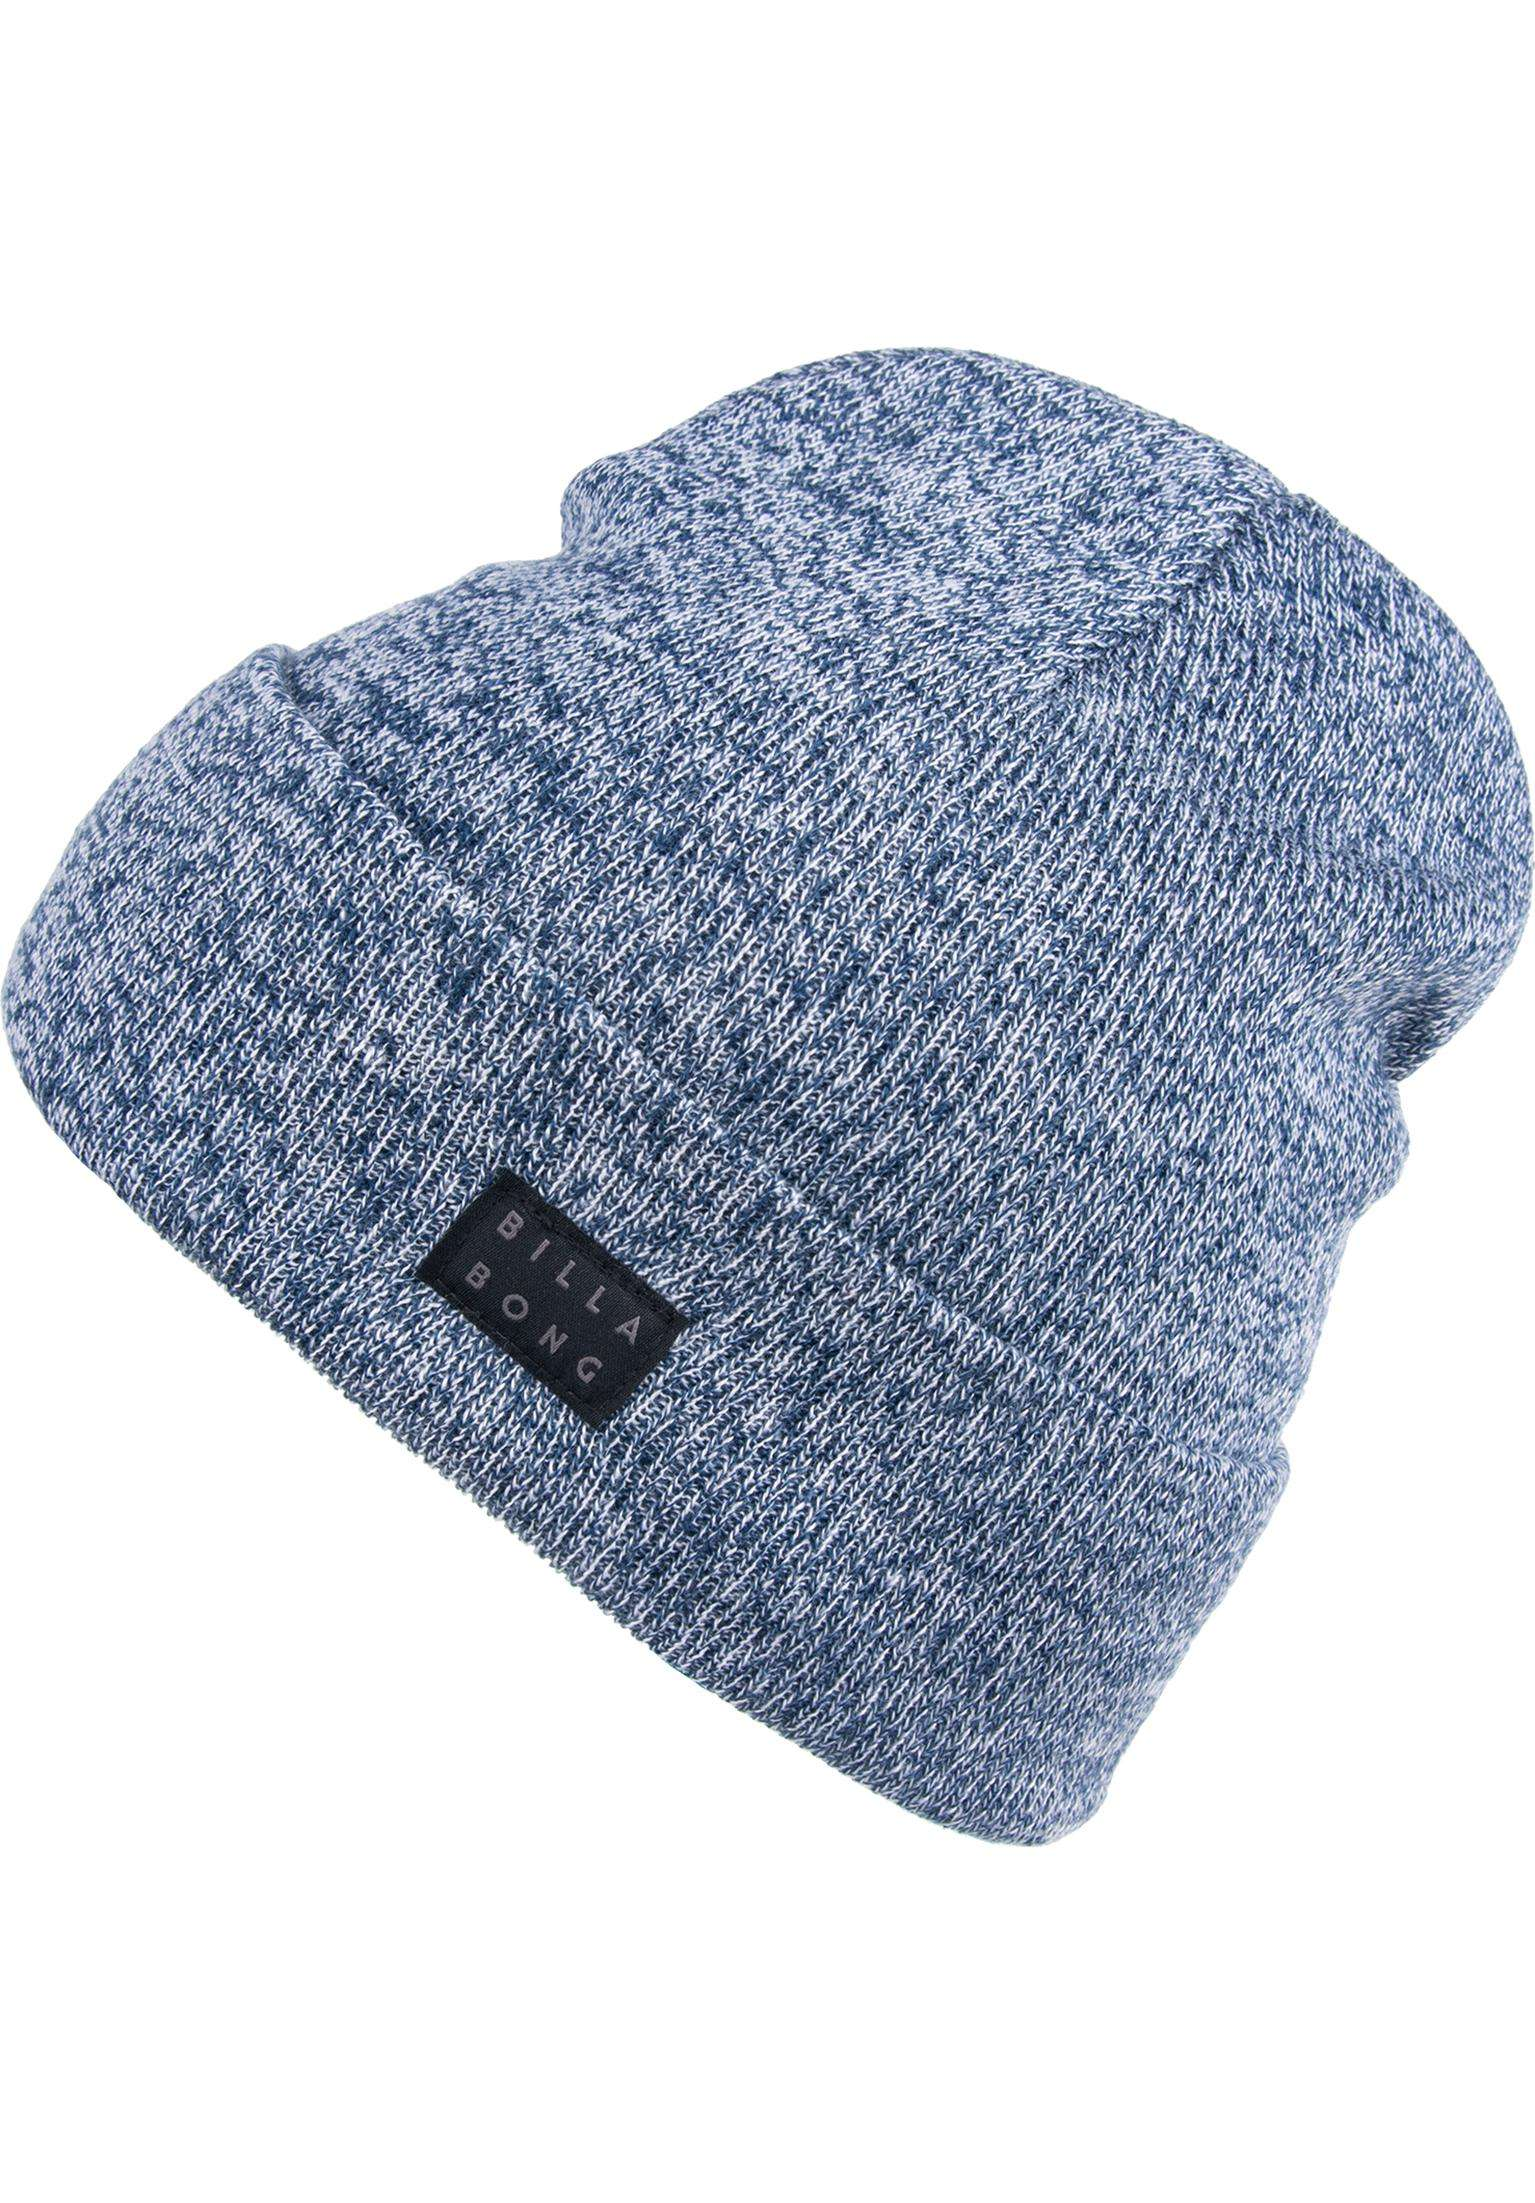 3cff31e6ff4ad Disaster Billabong Beanies in darkblueheather for Men